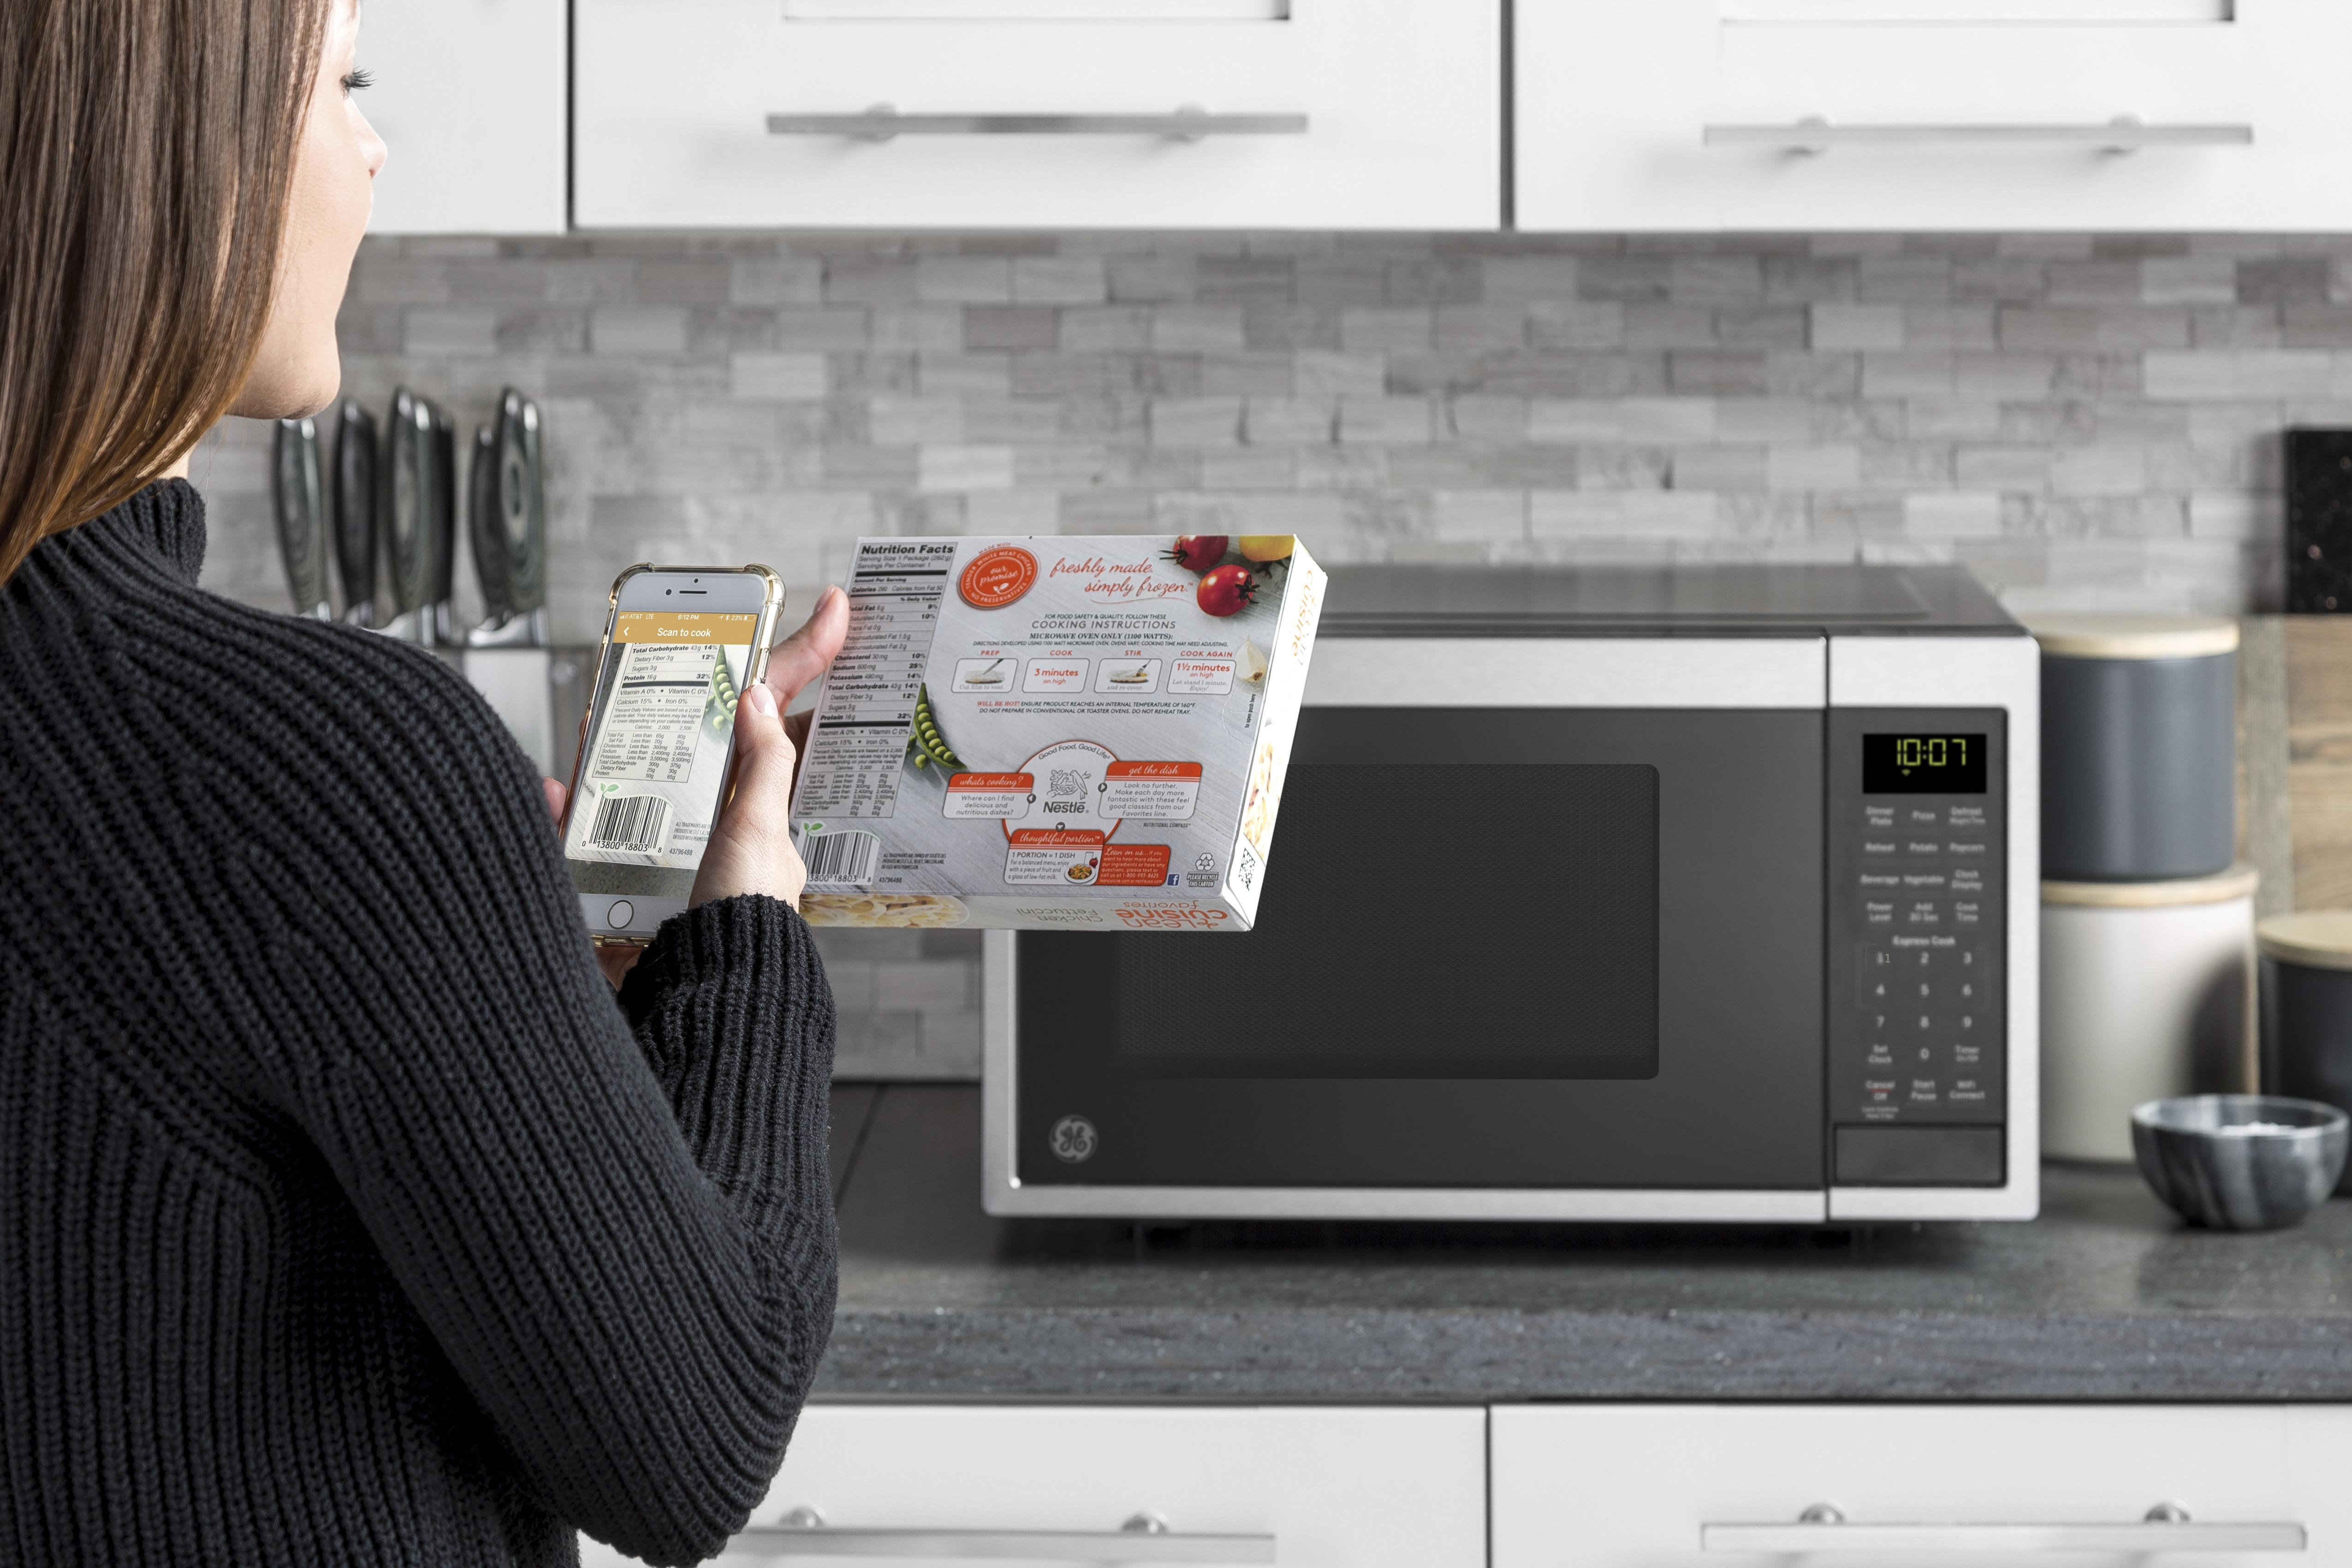 Just scan and cook ge appliances simplifies the microwave with new ge appliances wendy treinen 502 452 5002 wendyeinengeappliances publicscrutiny Gallery